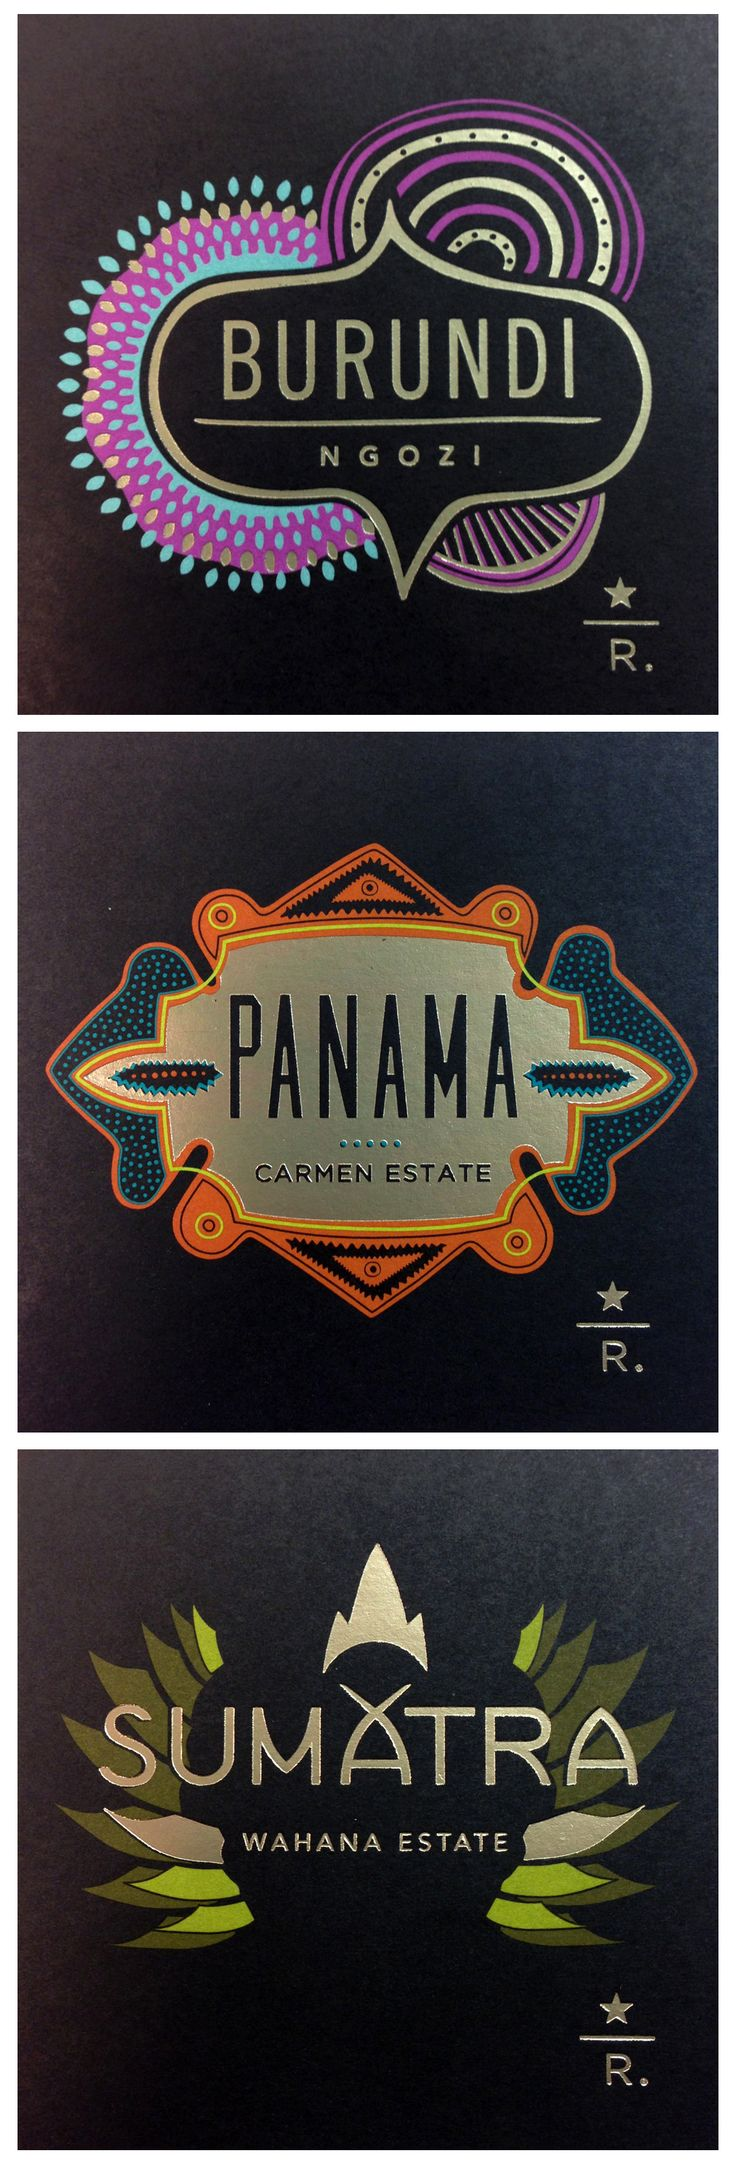 Some really impressive designs for the new Starbucks Reserve Coffee labels.